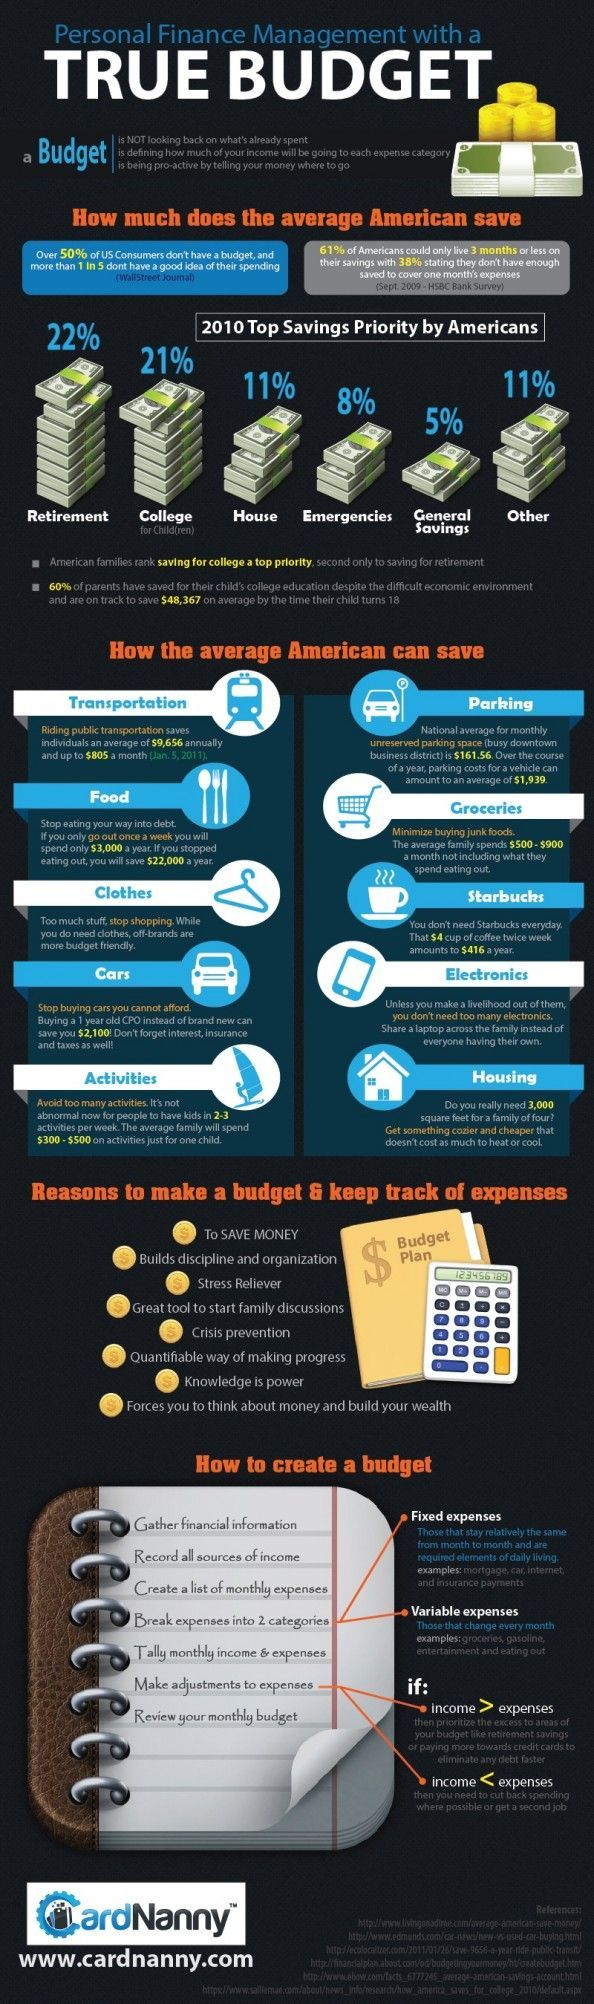 Personal Finance Management With A True Budget Infographic payoff debt tips, debt payoff tips #debt #debtfreedom